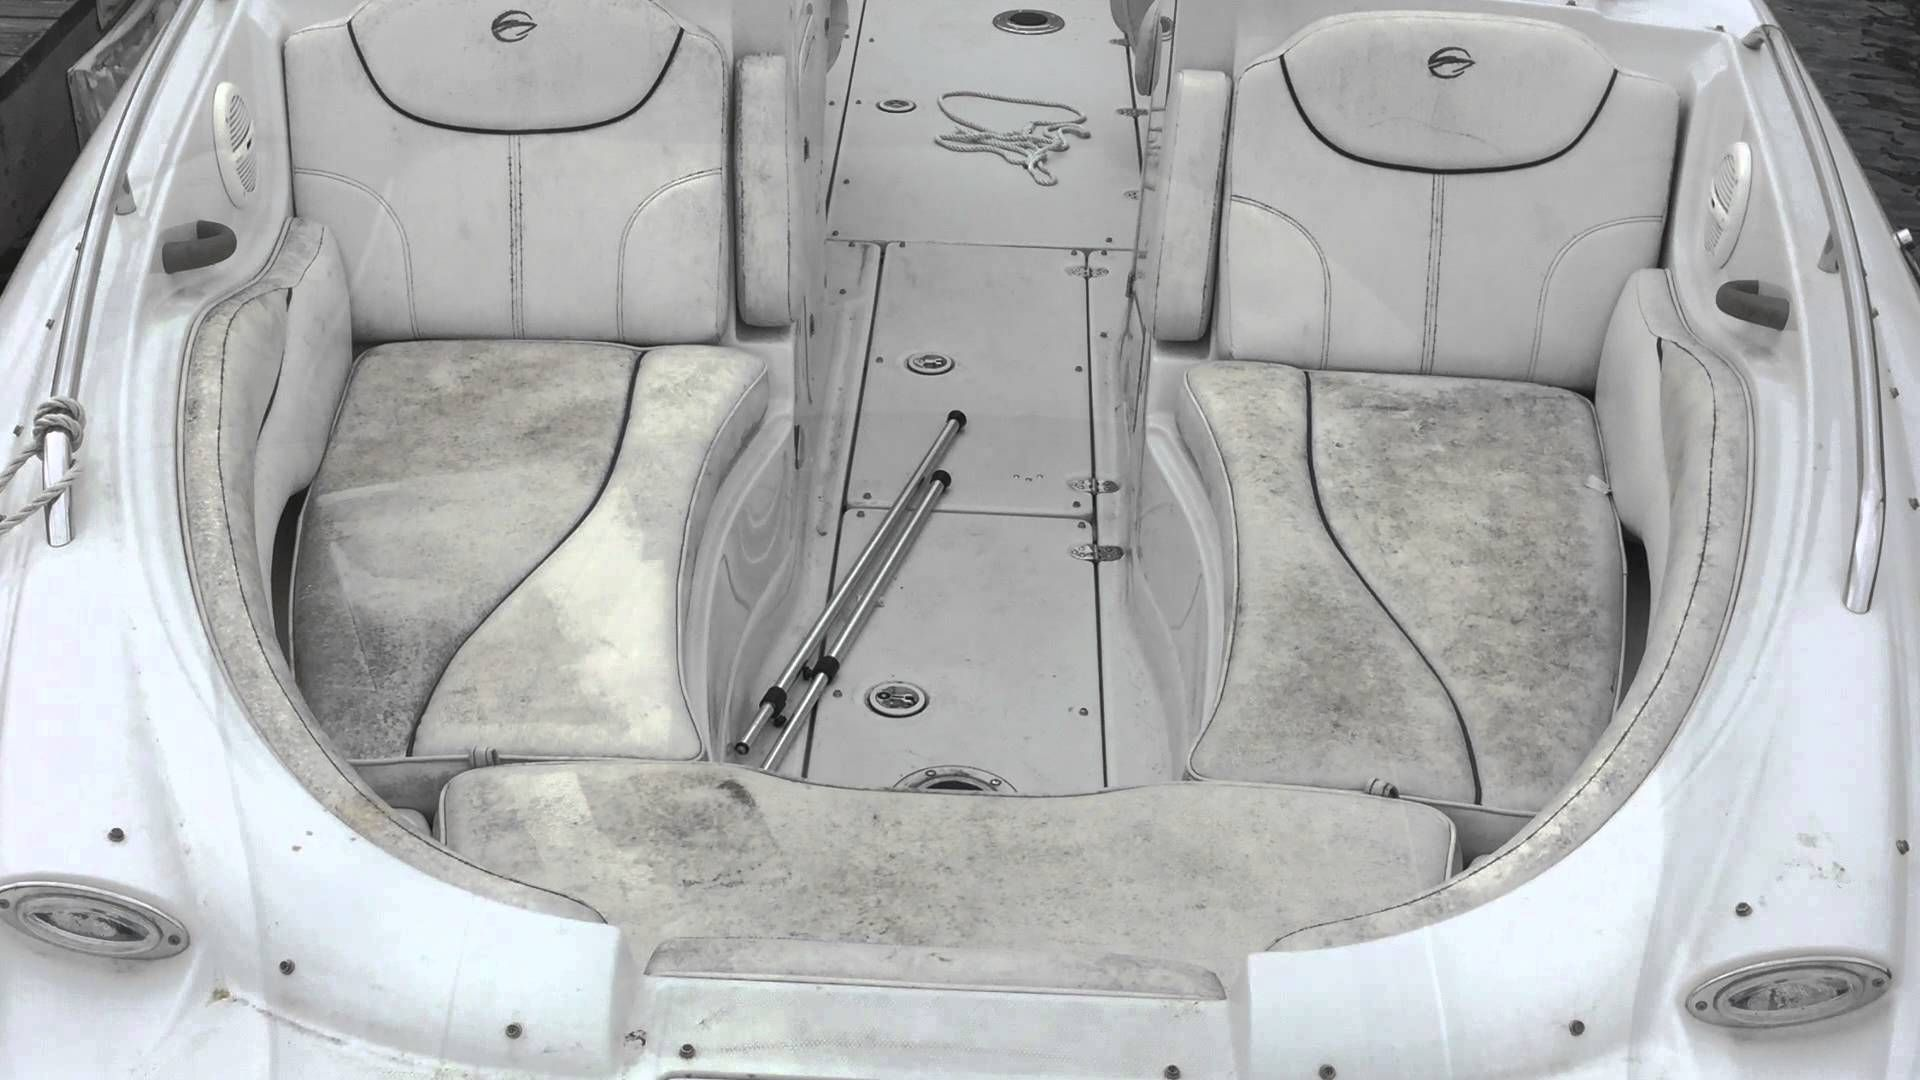 Image result for before and after yacht detailing